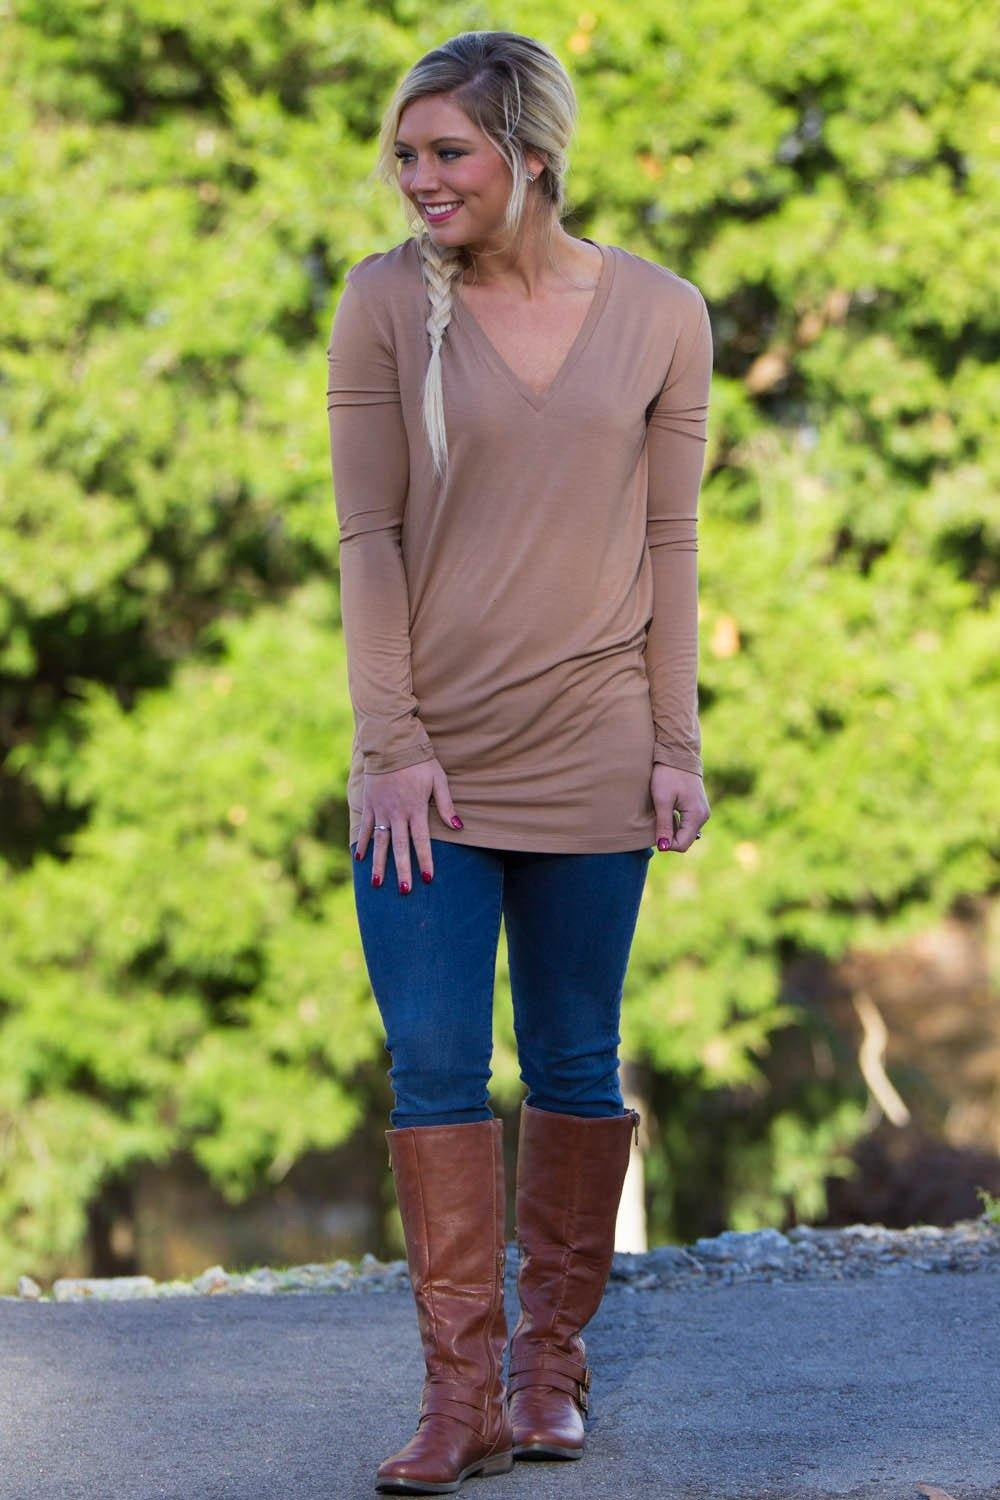 Long Sleeve Slim Fit V-Neck Piko Top - Mocha - Piko Clothing